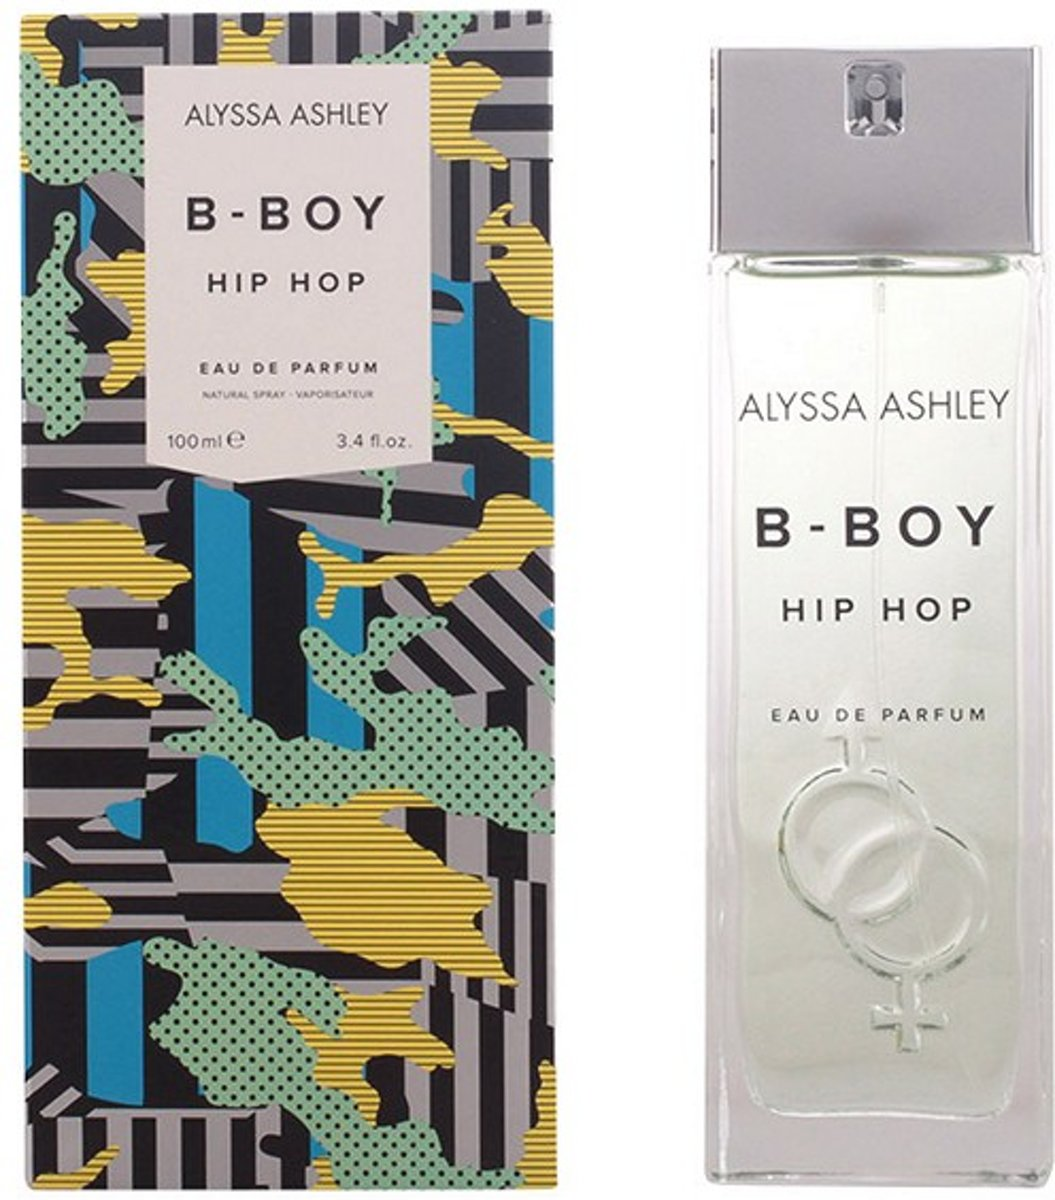 Alyssa Ashley B-BOY HIP HOP eau de parfum spray 30 ml